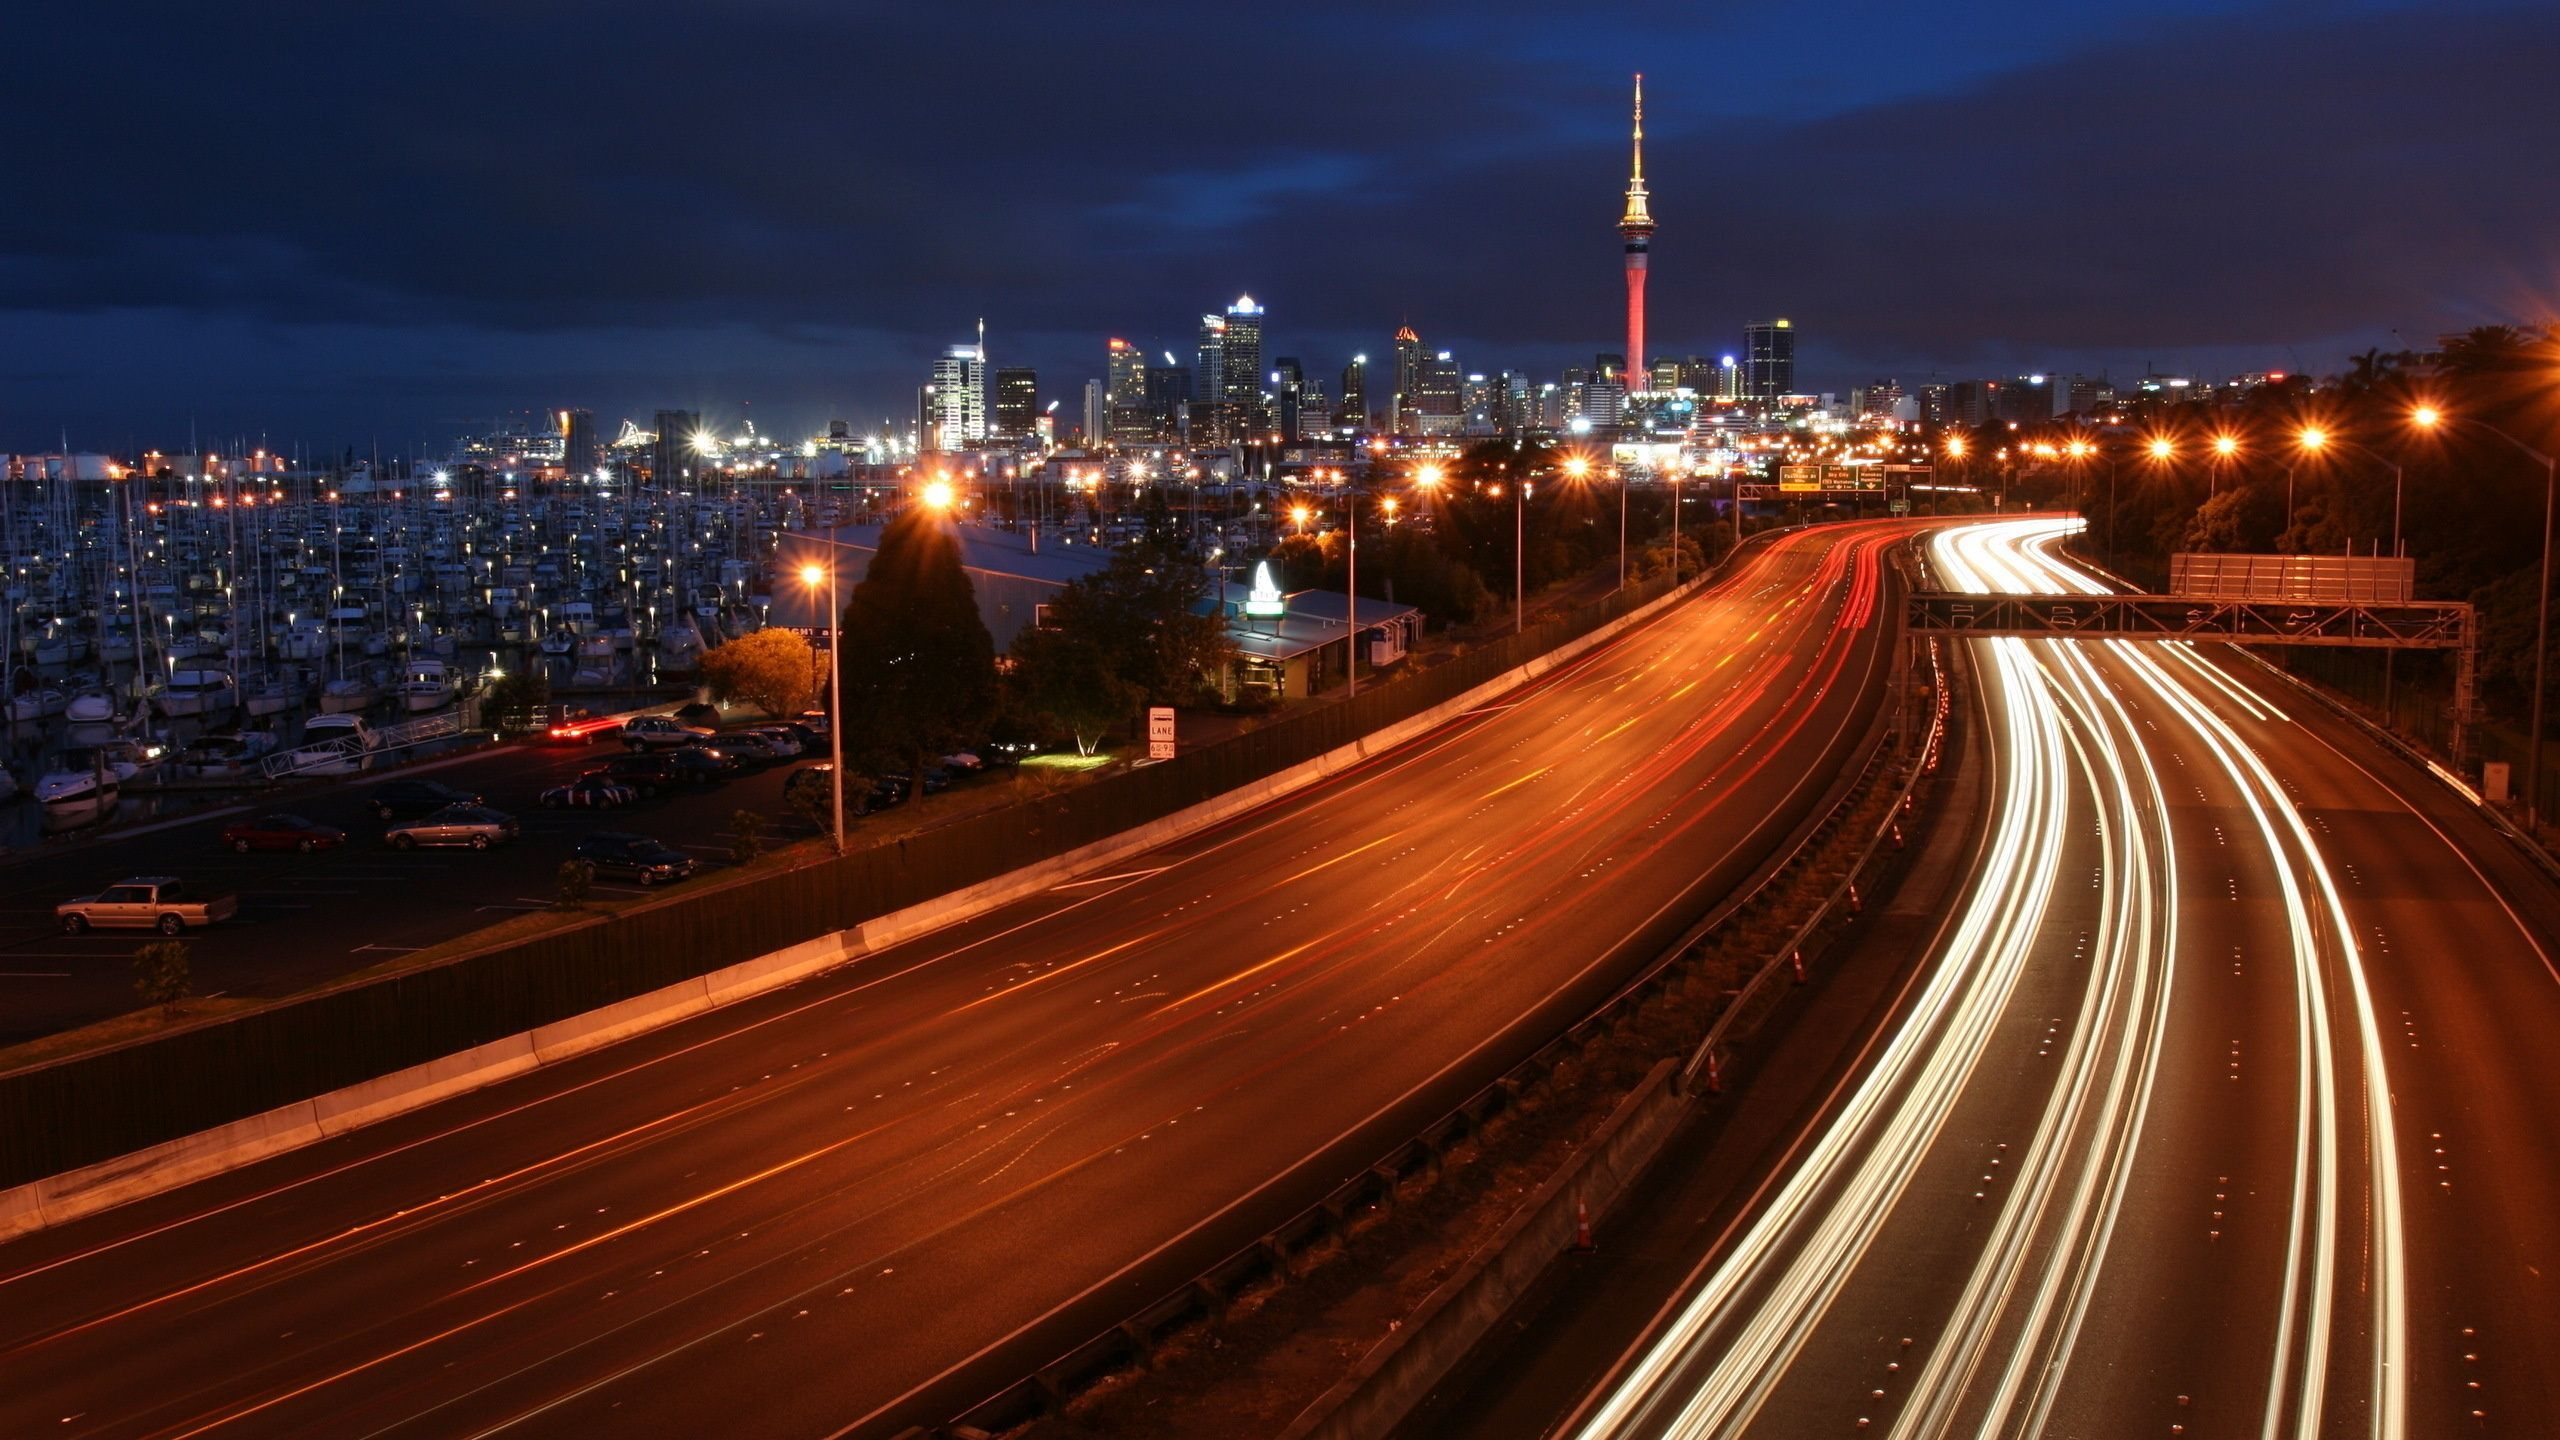 highway, lights, megalopolis, Yacht, night, wallpapers , Pc backgrounds, free photos - HD wallpaper desktop backgrounds